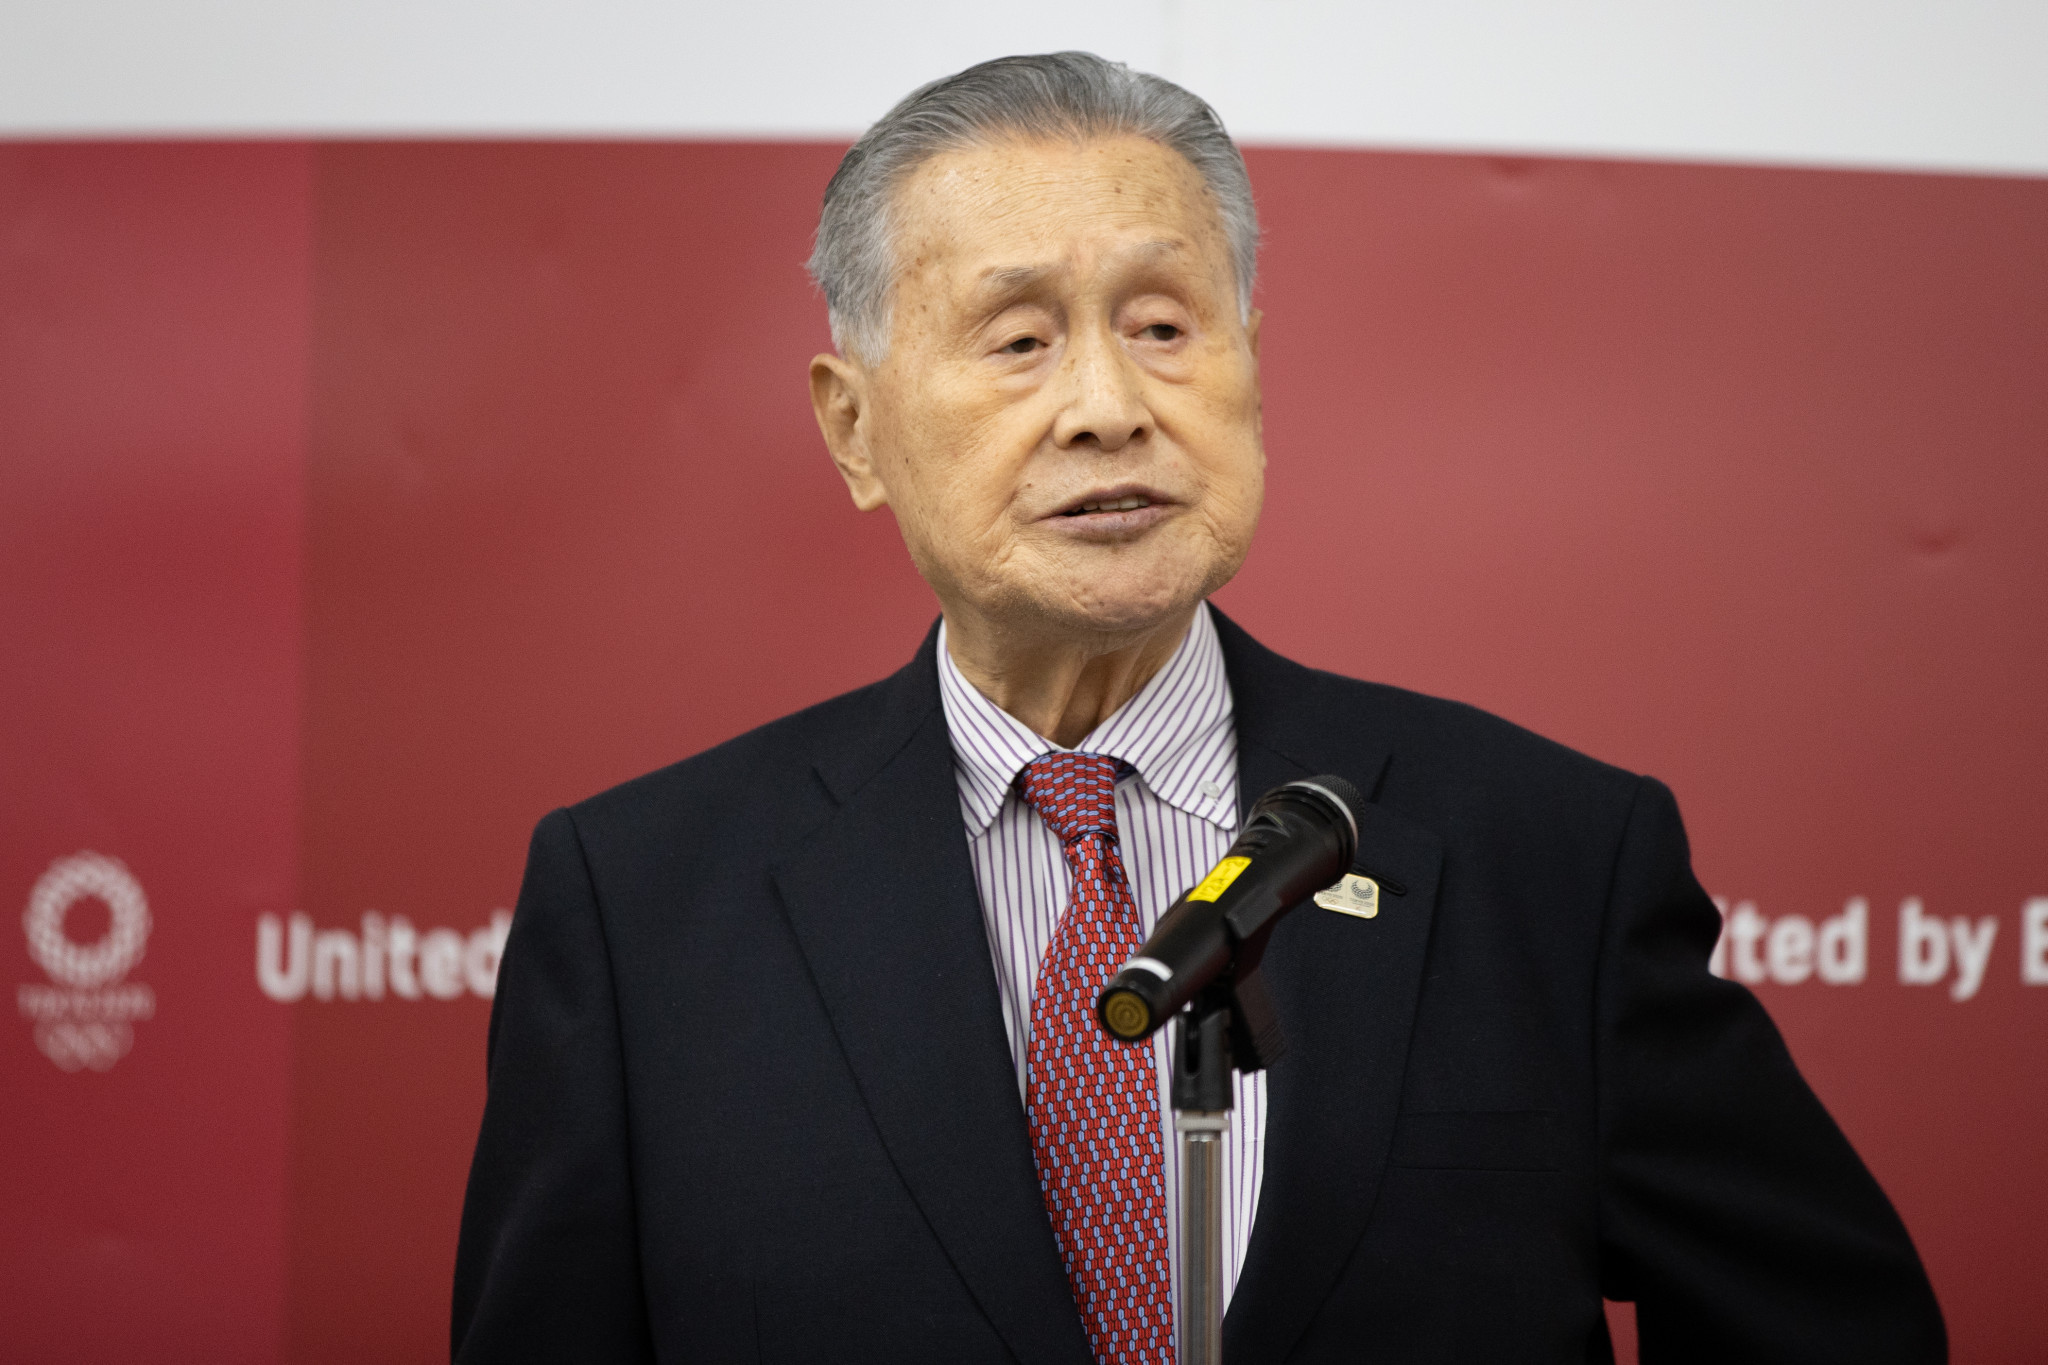 Tokyo 2020 President Mori convinced not to resign after sexist comments, report claims